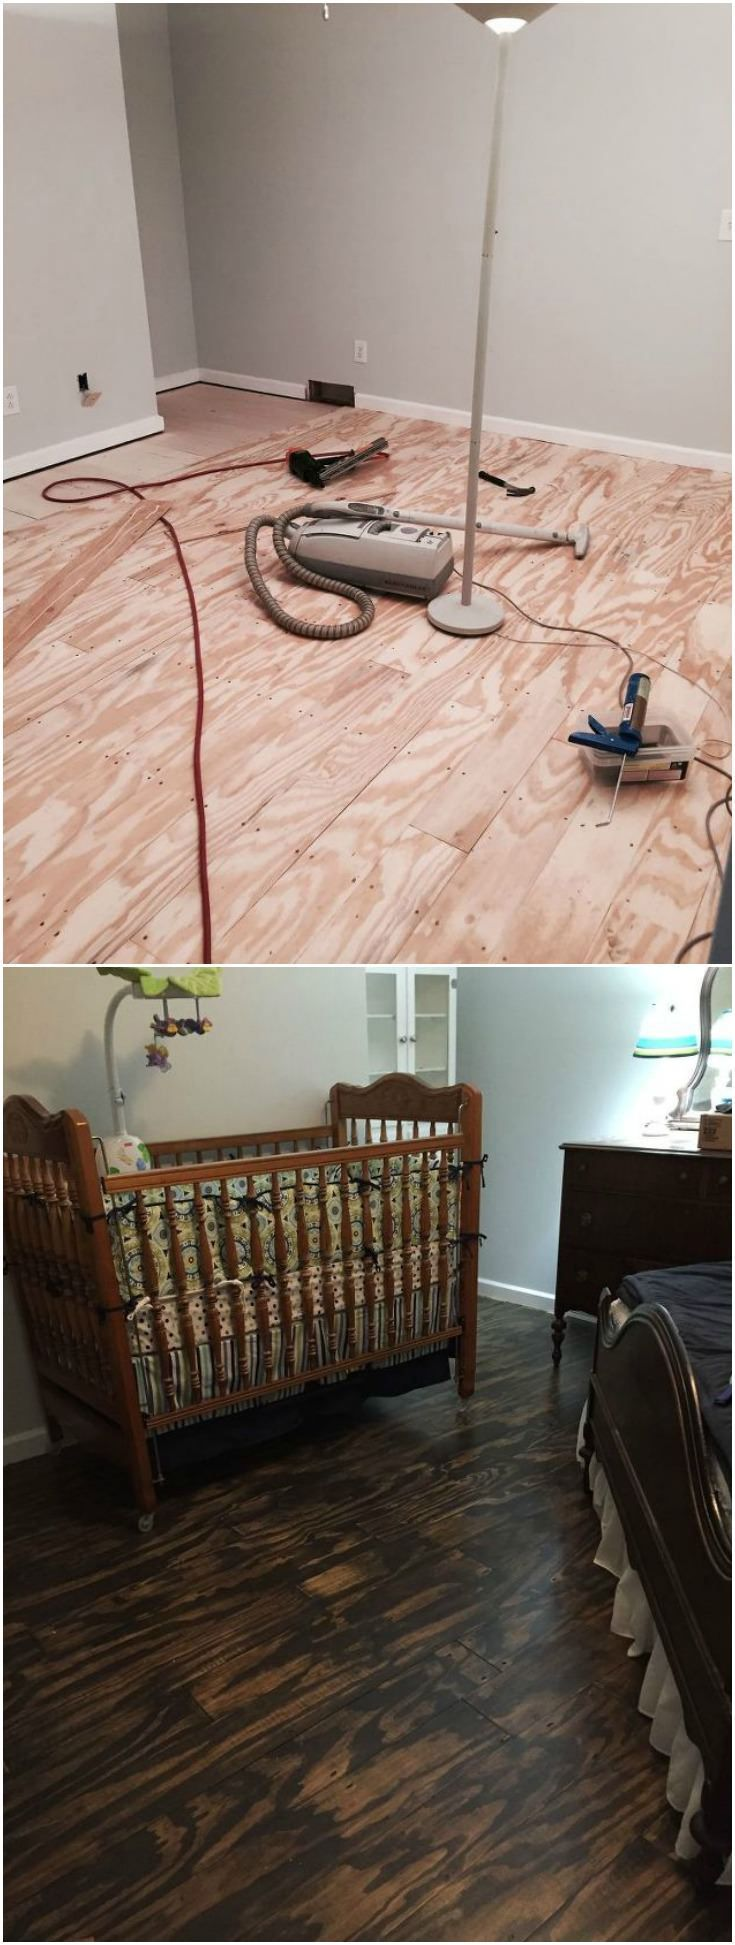 DIY Plywood Plank Floors! It's easier than you may think! We did this in a bedroom. People think they look like high-end expensive floors. I'd say the bedroom, which is pretty good size, cost us about $225 total - including the lumber yard, stain, etc.